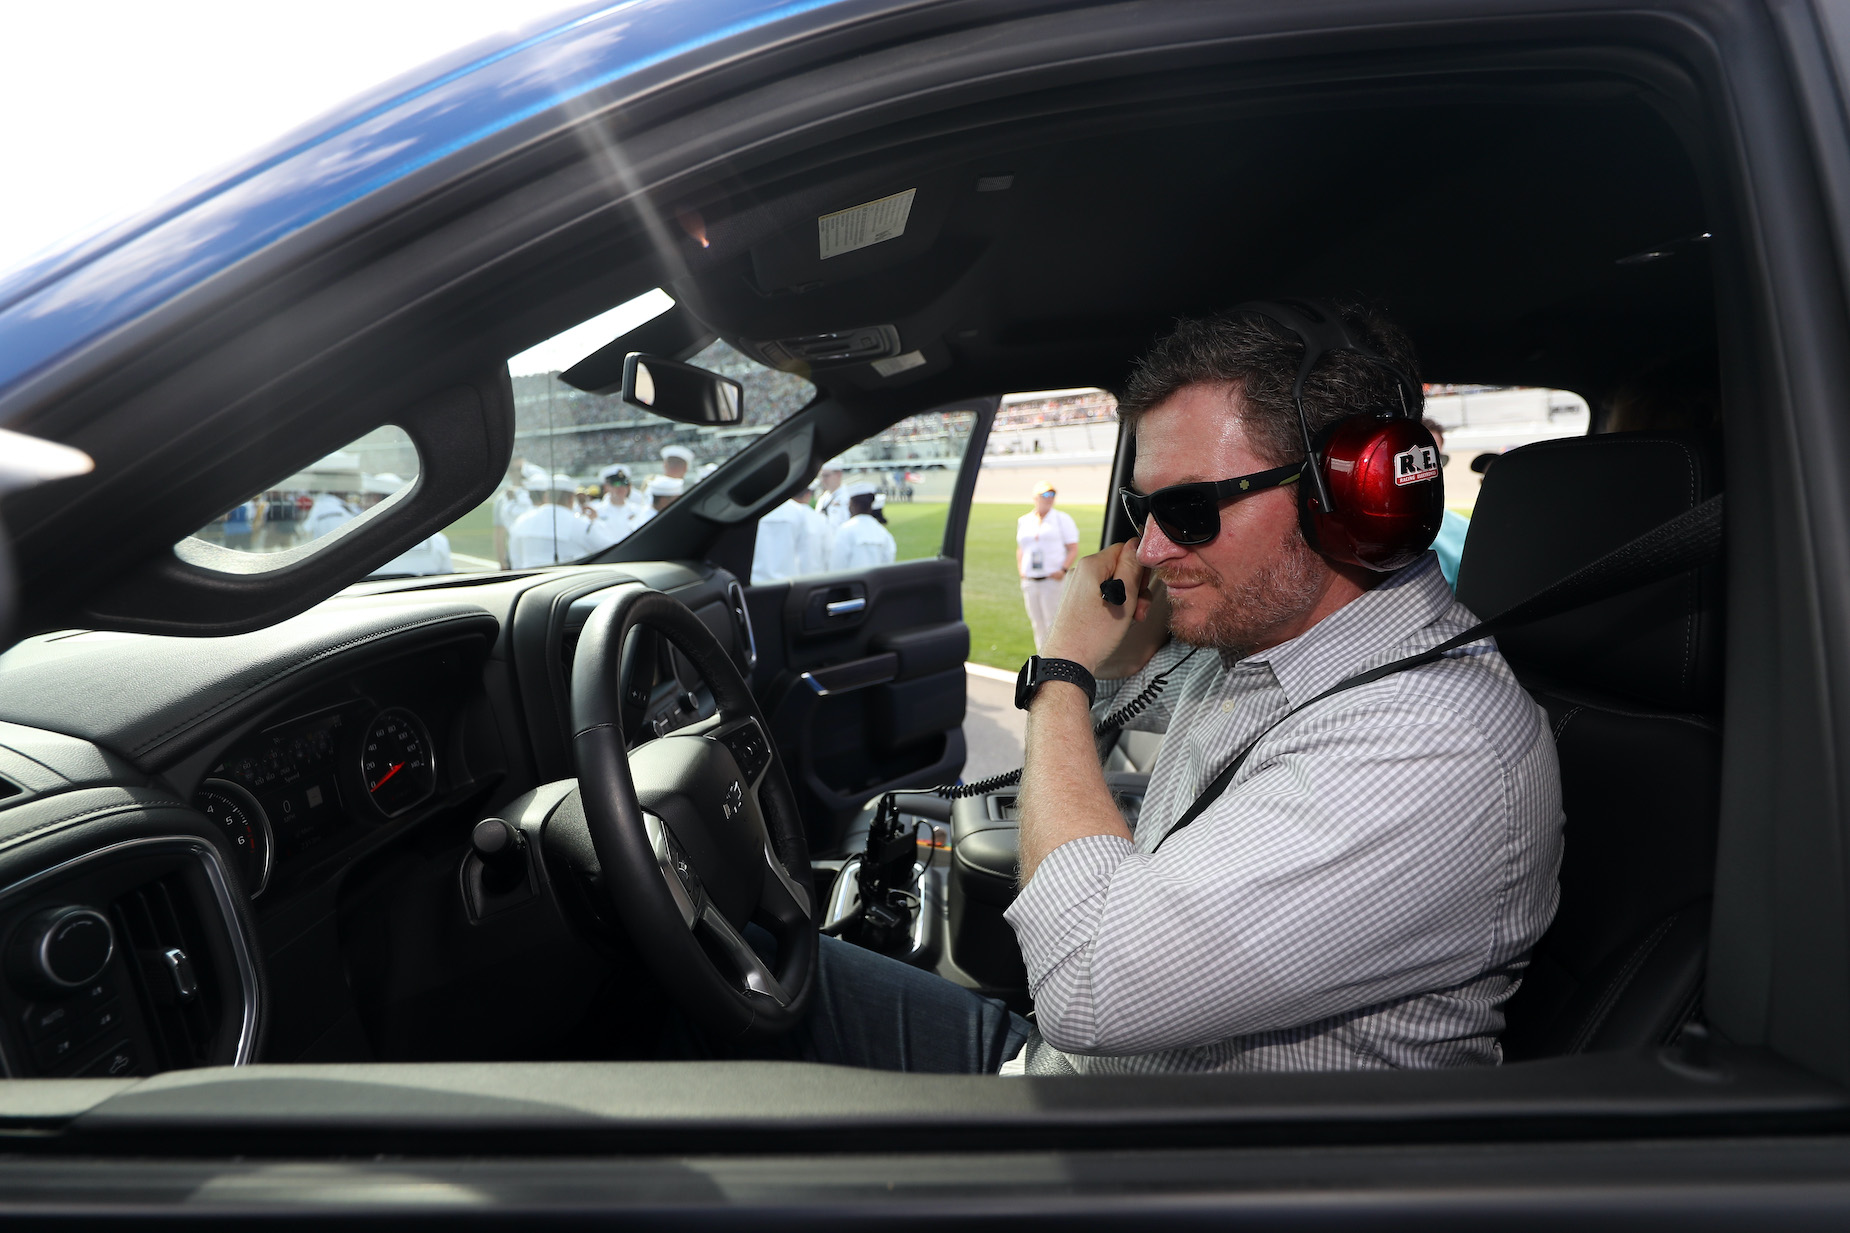 NASCAR star Dale Earnhardt Jr. in the pace truck ahead of the 2019 Daytona 500.